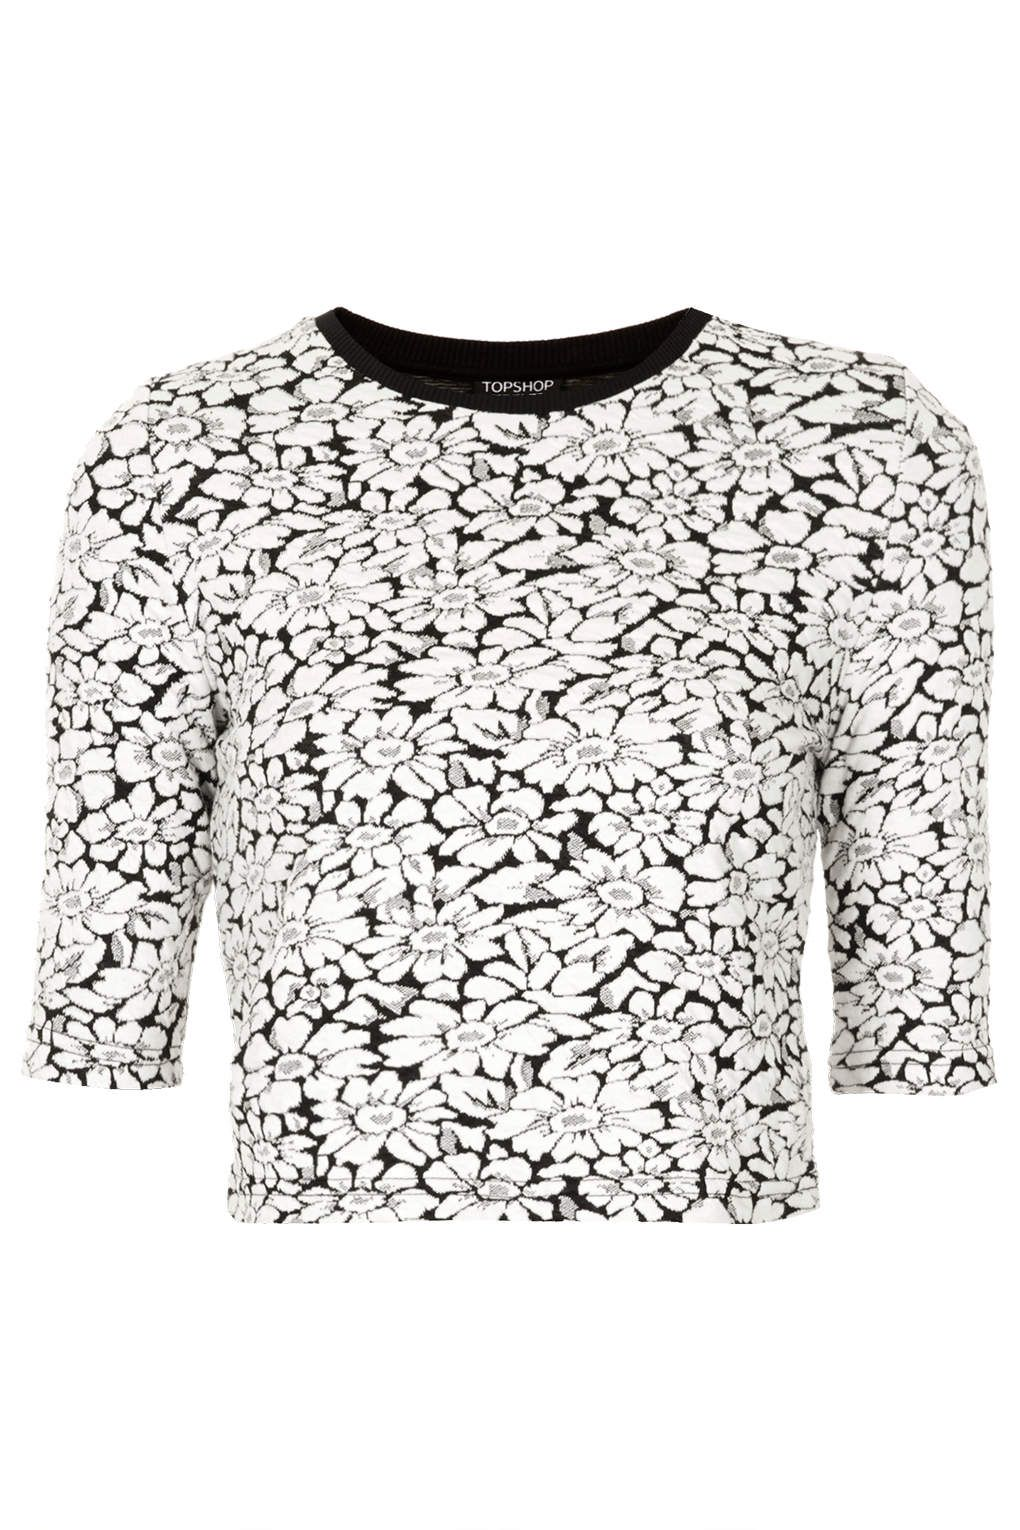 Mono Floral Top | http://www.topshop.com/en/tsuk/product/clothing-427/tops-443/crop-tops-2289261/mono-floral-crop-top-2588924?refinements=category~%5b715507%7c208524%5d&bi=1&ps=200